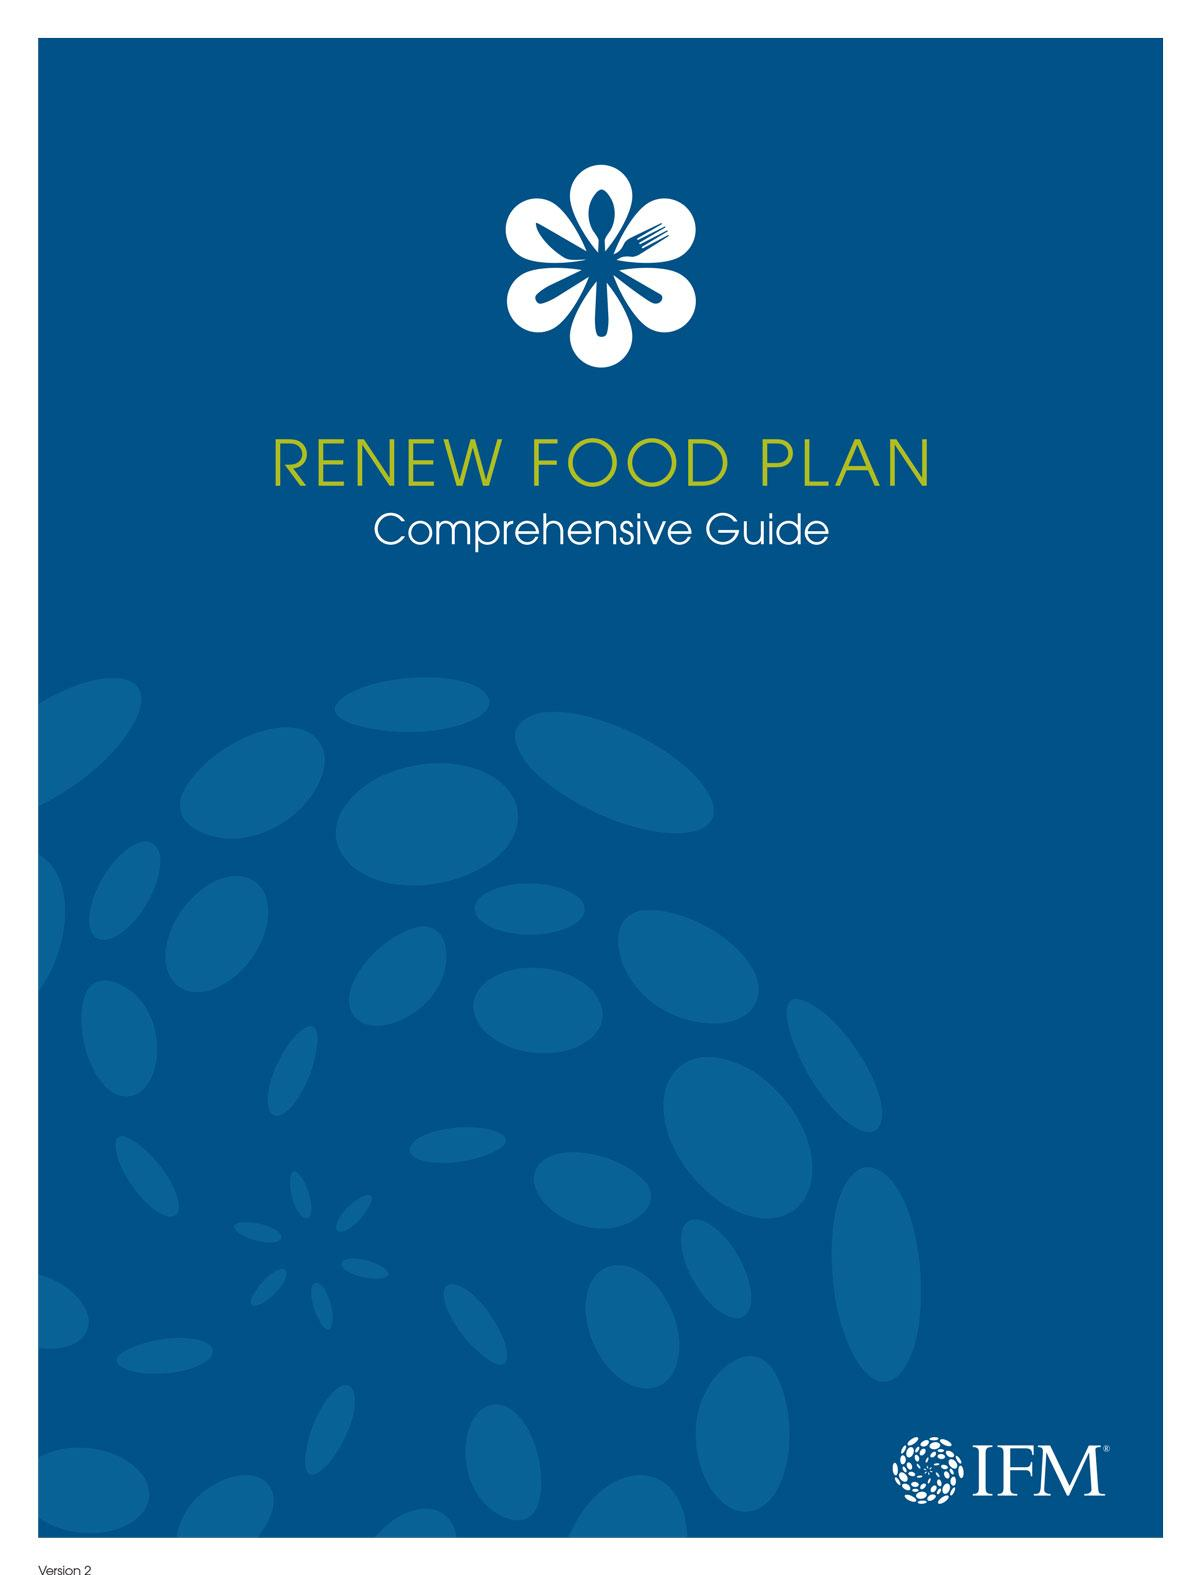 ReNew Food Plan Comprehensive Guide